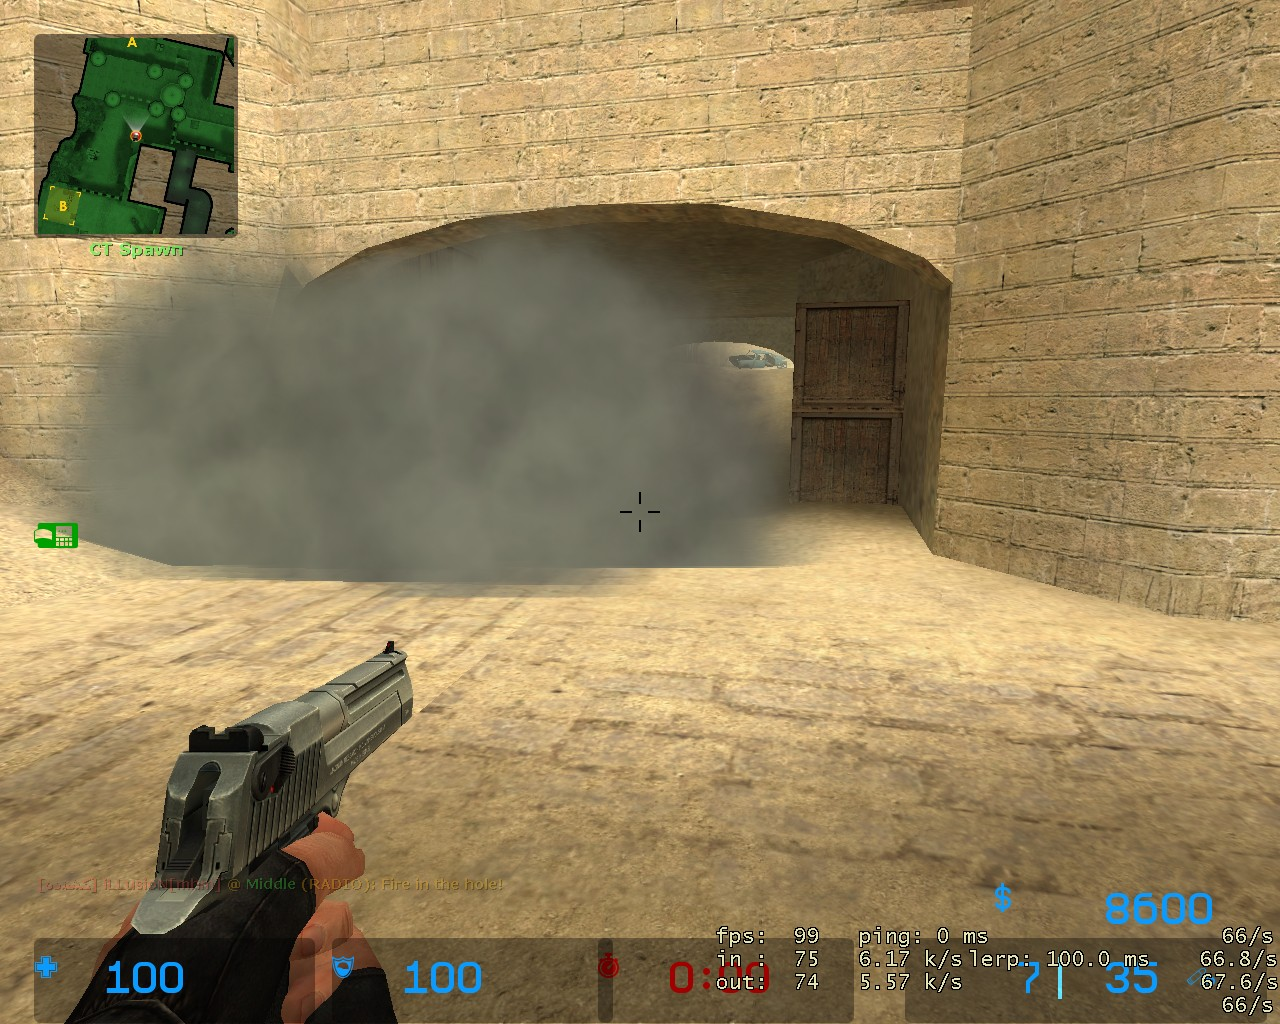 New BF2-de_dust2-ct-spawn-mid-effect-jpg